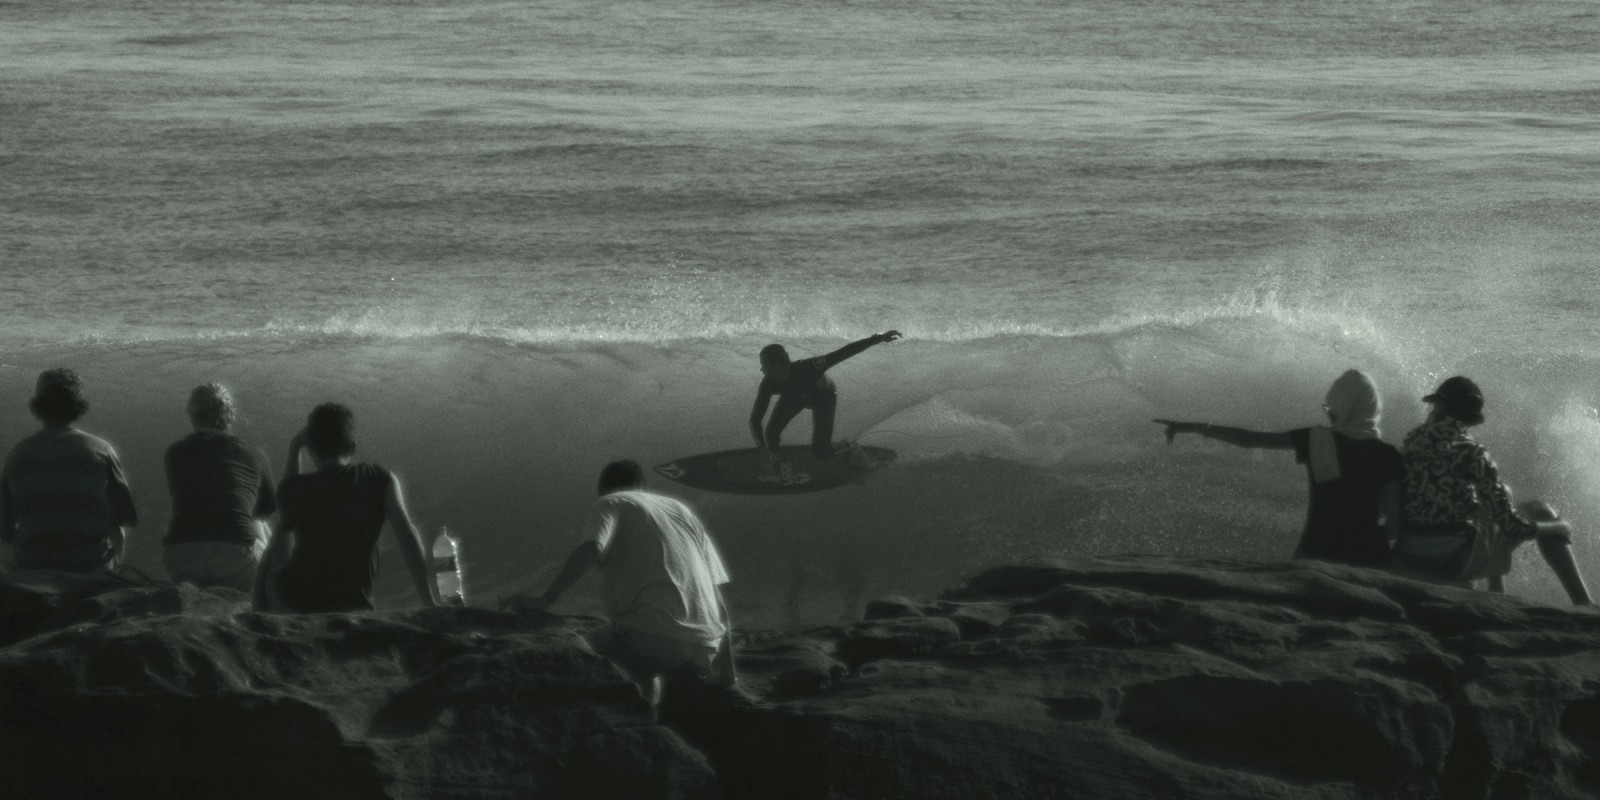 Action photos of Monster Energy Surf athlete William Aliotti in Morocco